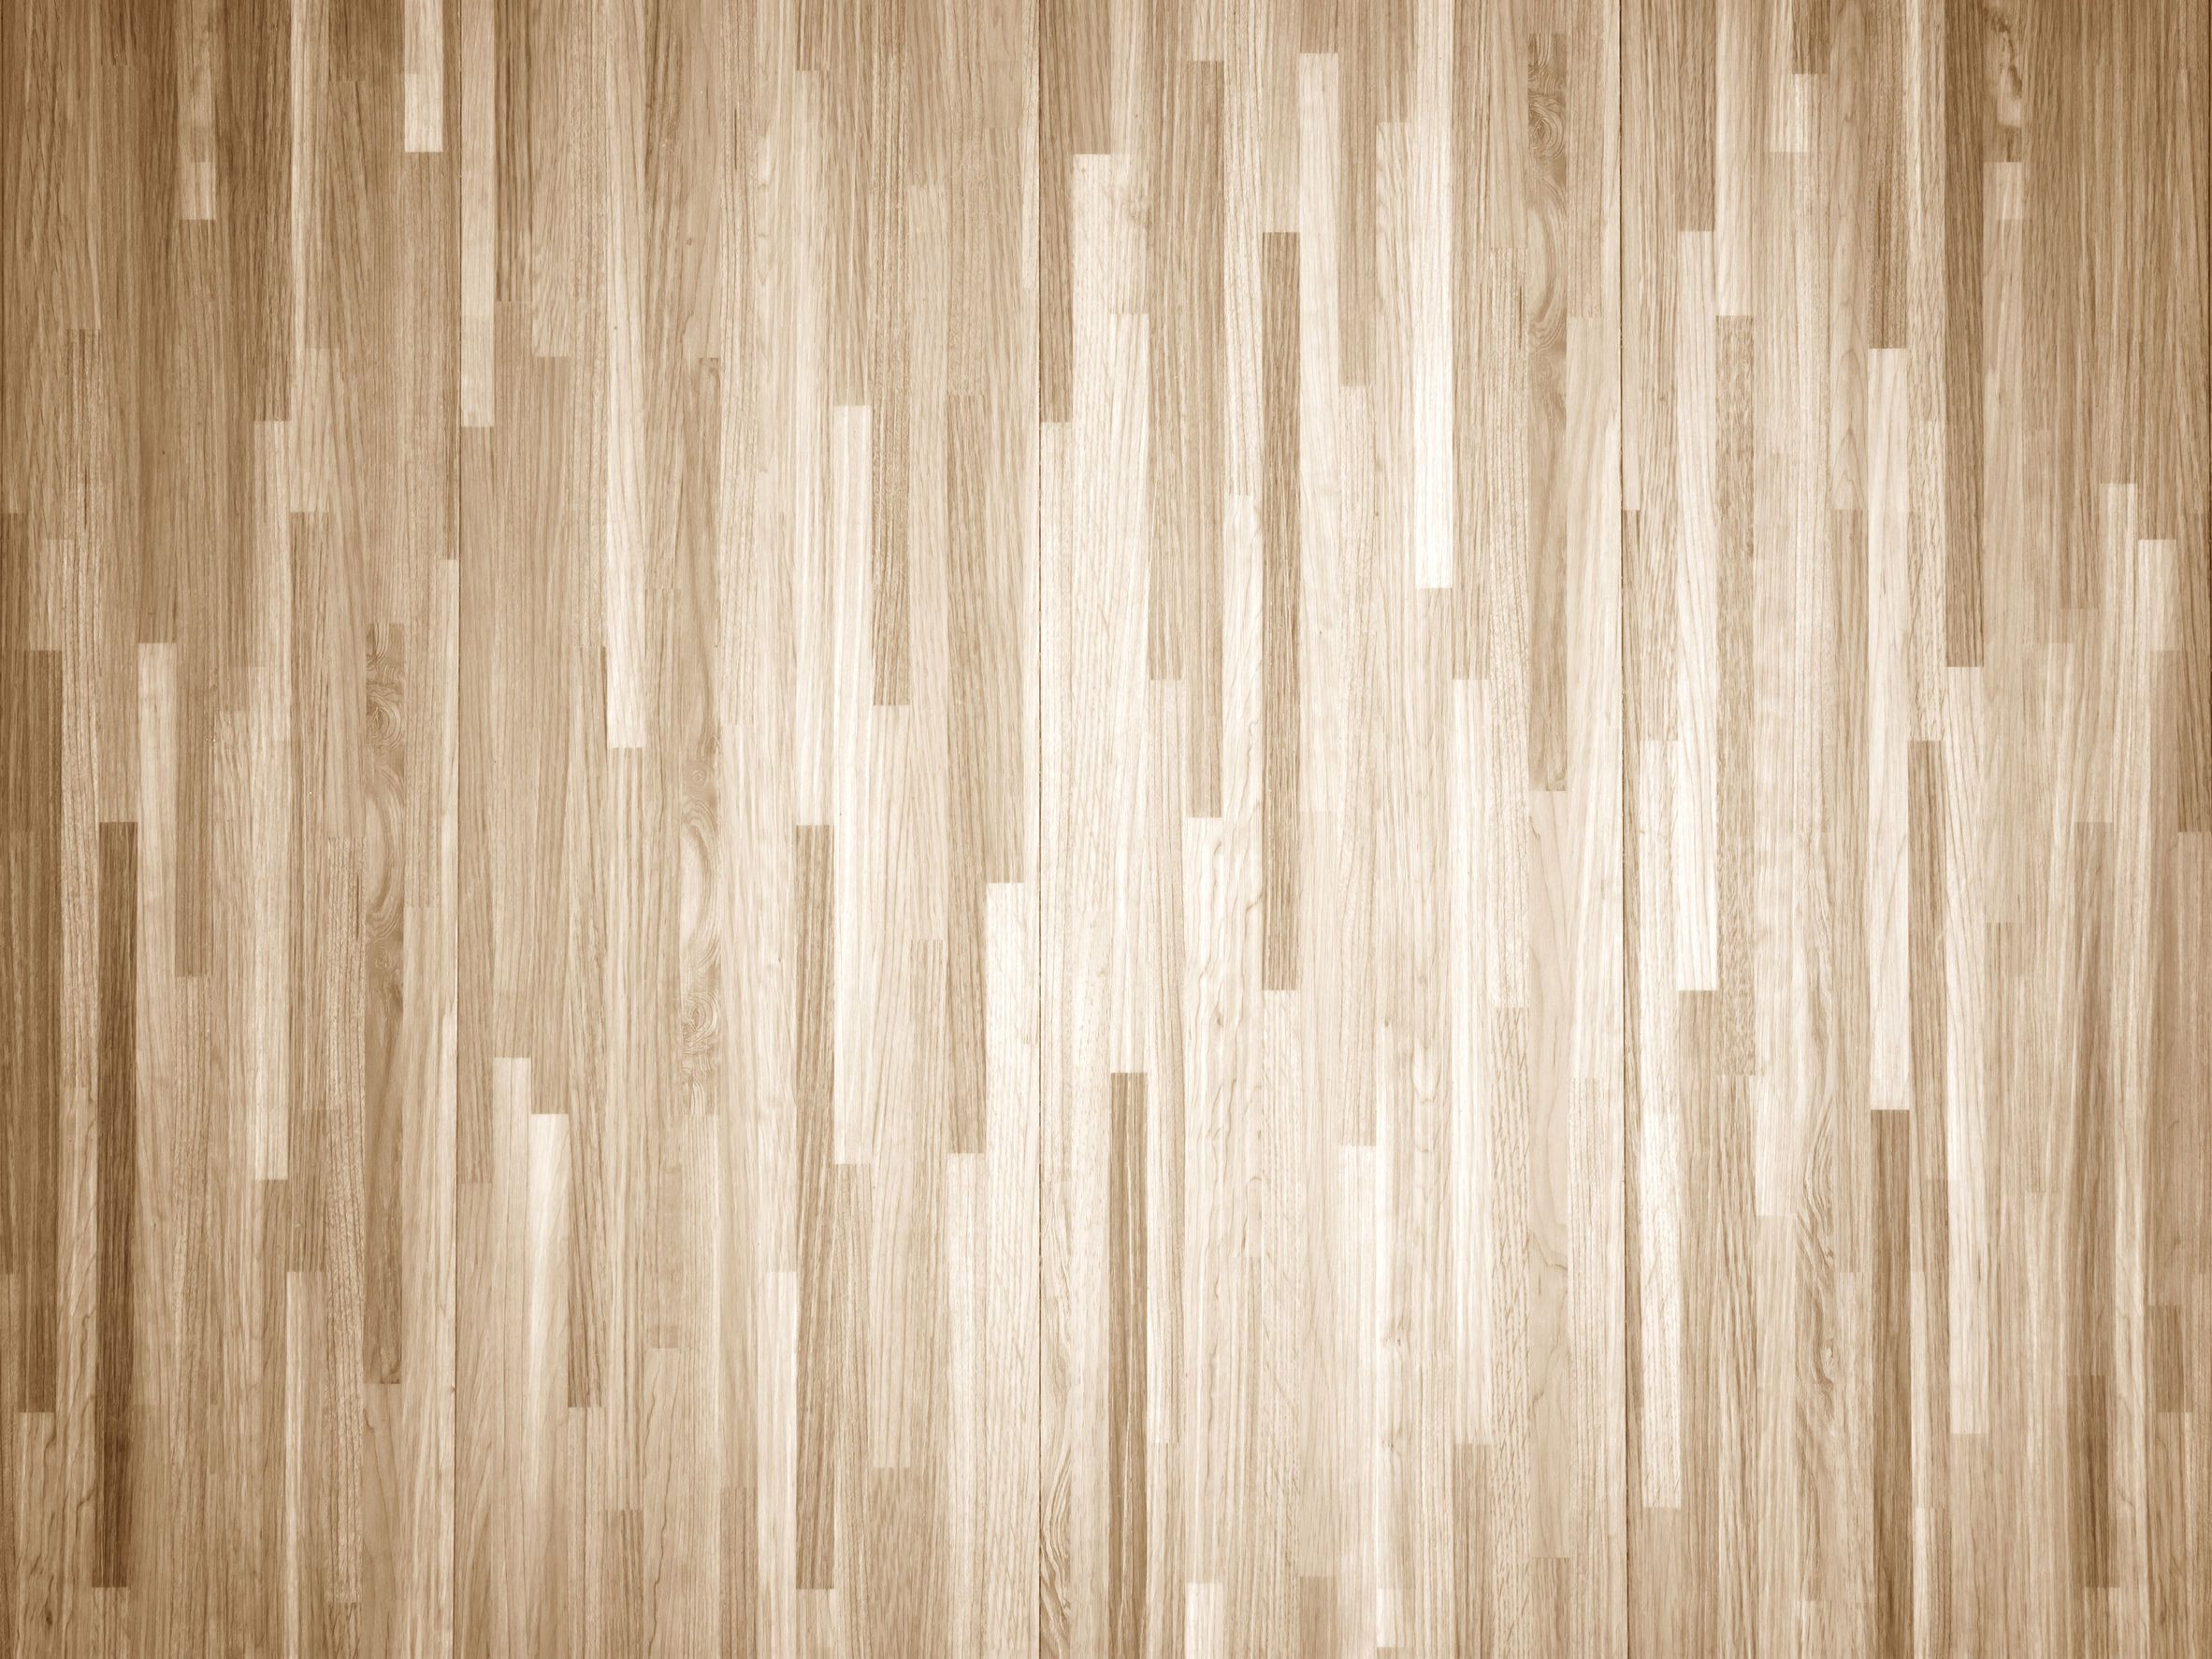 cheap hardwood flooring alternatives of how to chemically strip wood floors woodfloordoctor com pertaining to you